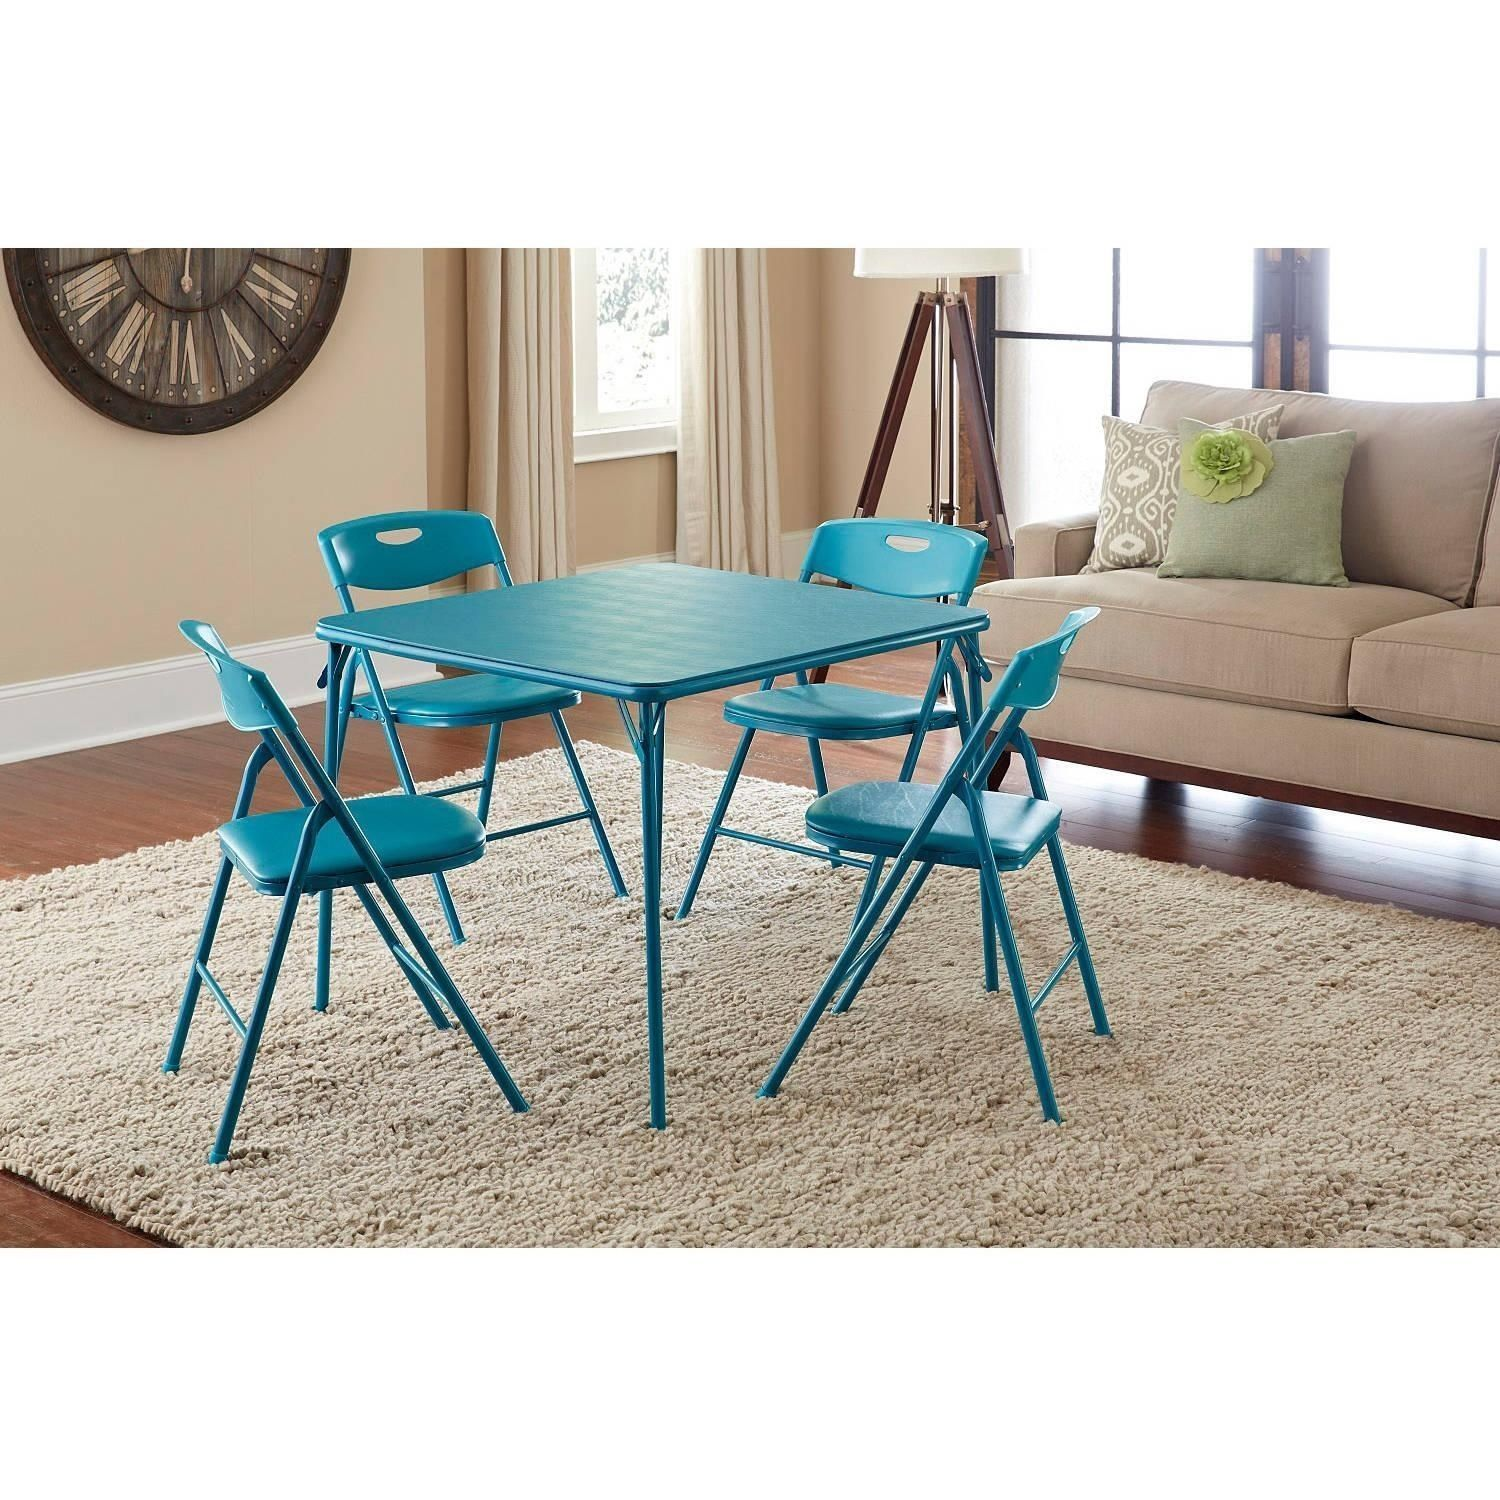 Folding dining table and chair set  Folding Table Chair Set pc Activity Card Game Dining Living Room